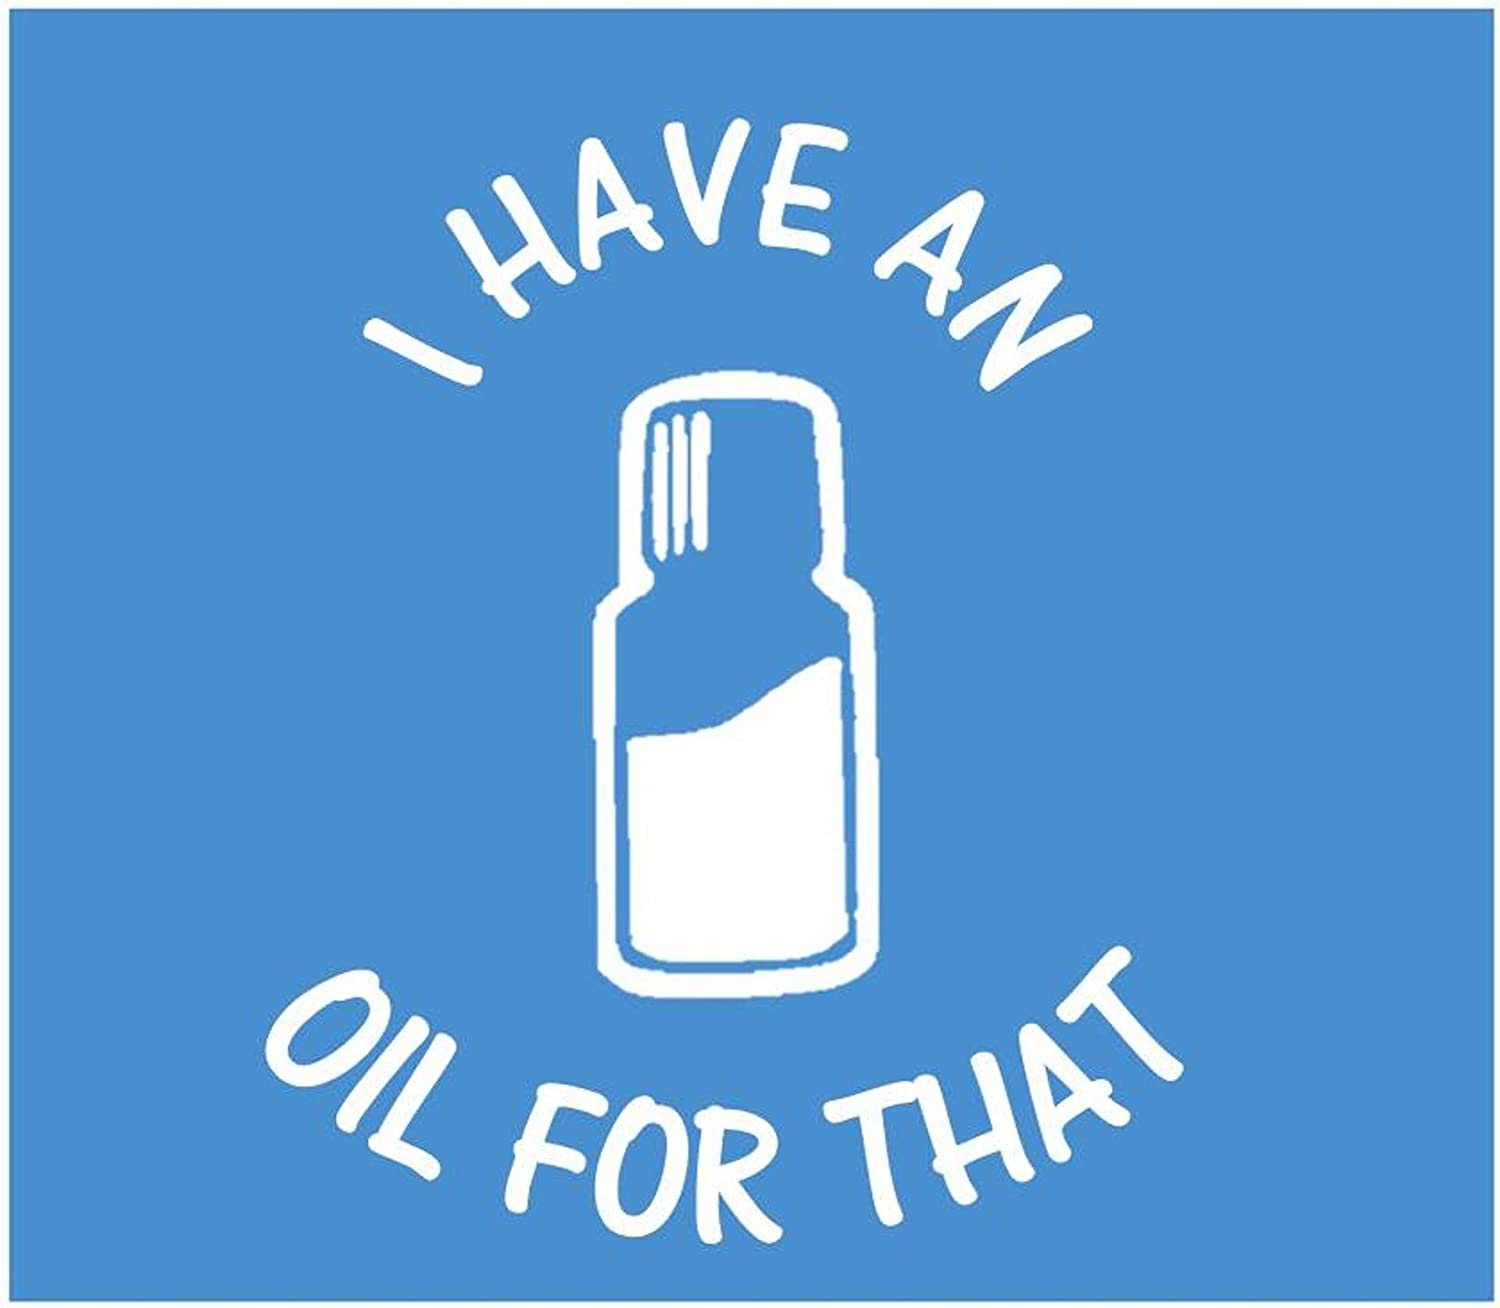 """I have an oil for that AS003 6x6/"""" sticker essential oil decal ThatLilCabin"""